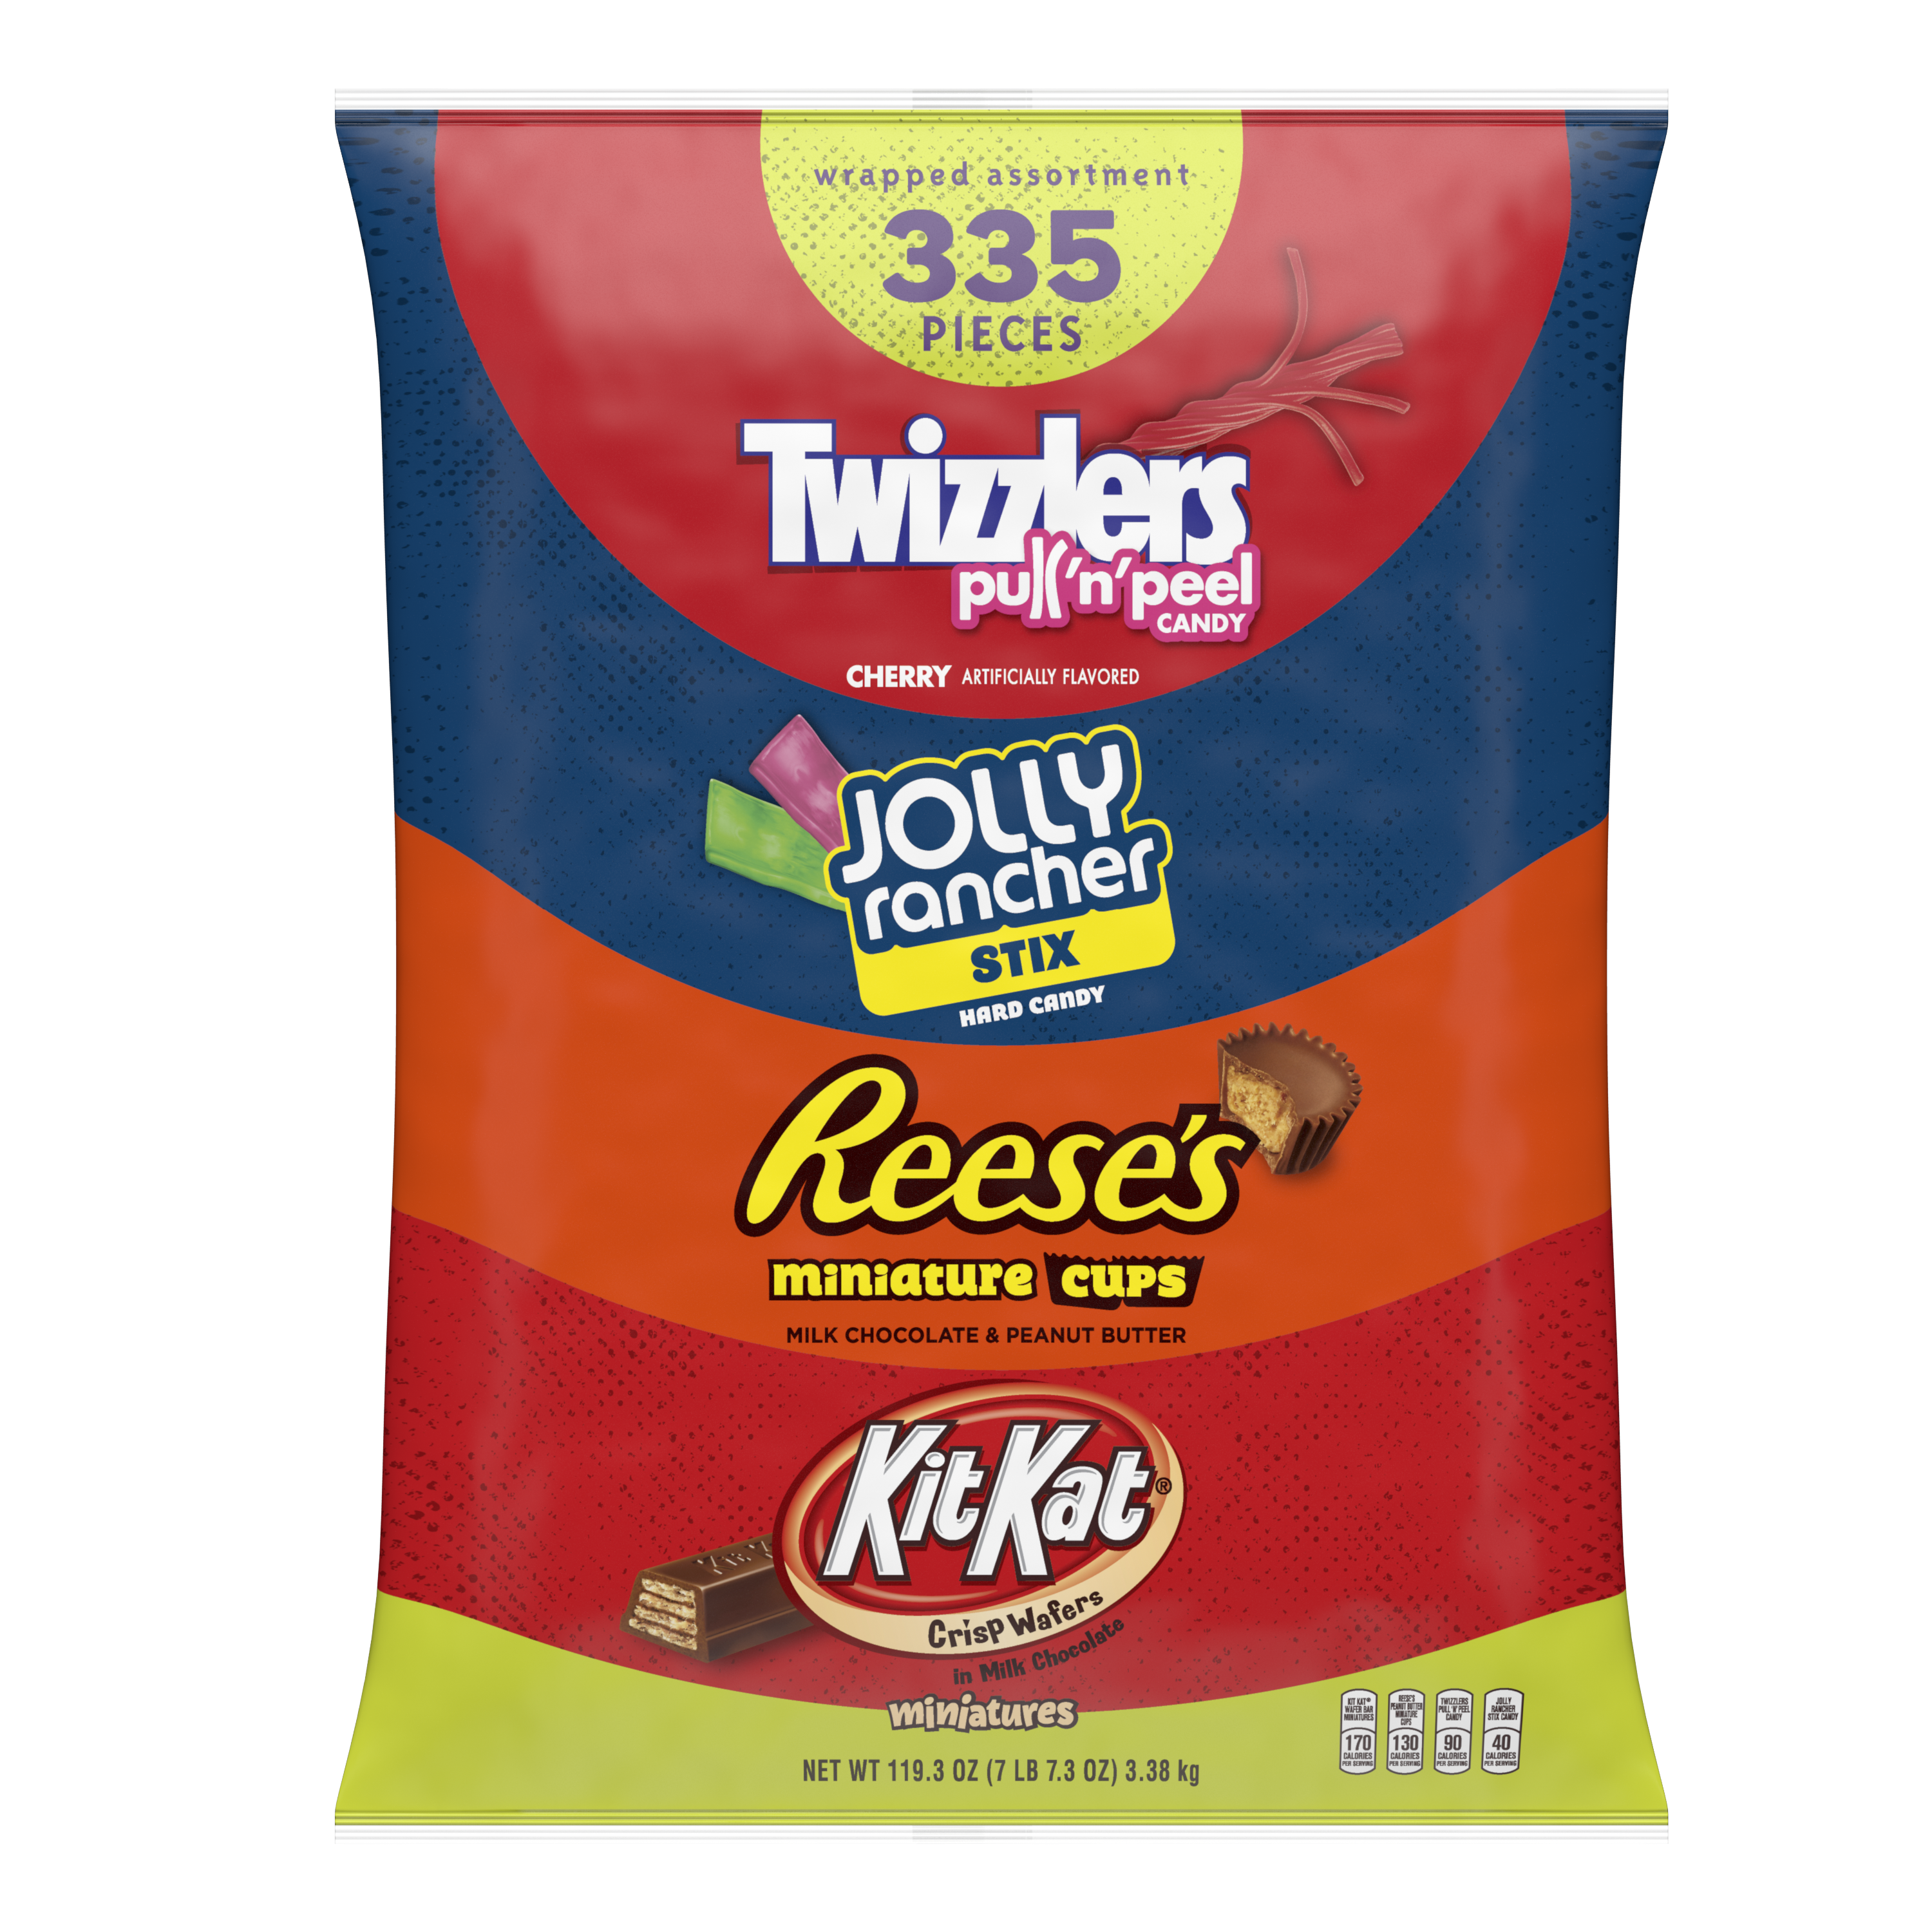 Hershey Sweet Wrapped Assortment, 119.3 oz bag, 335 pieces - Front of Package